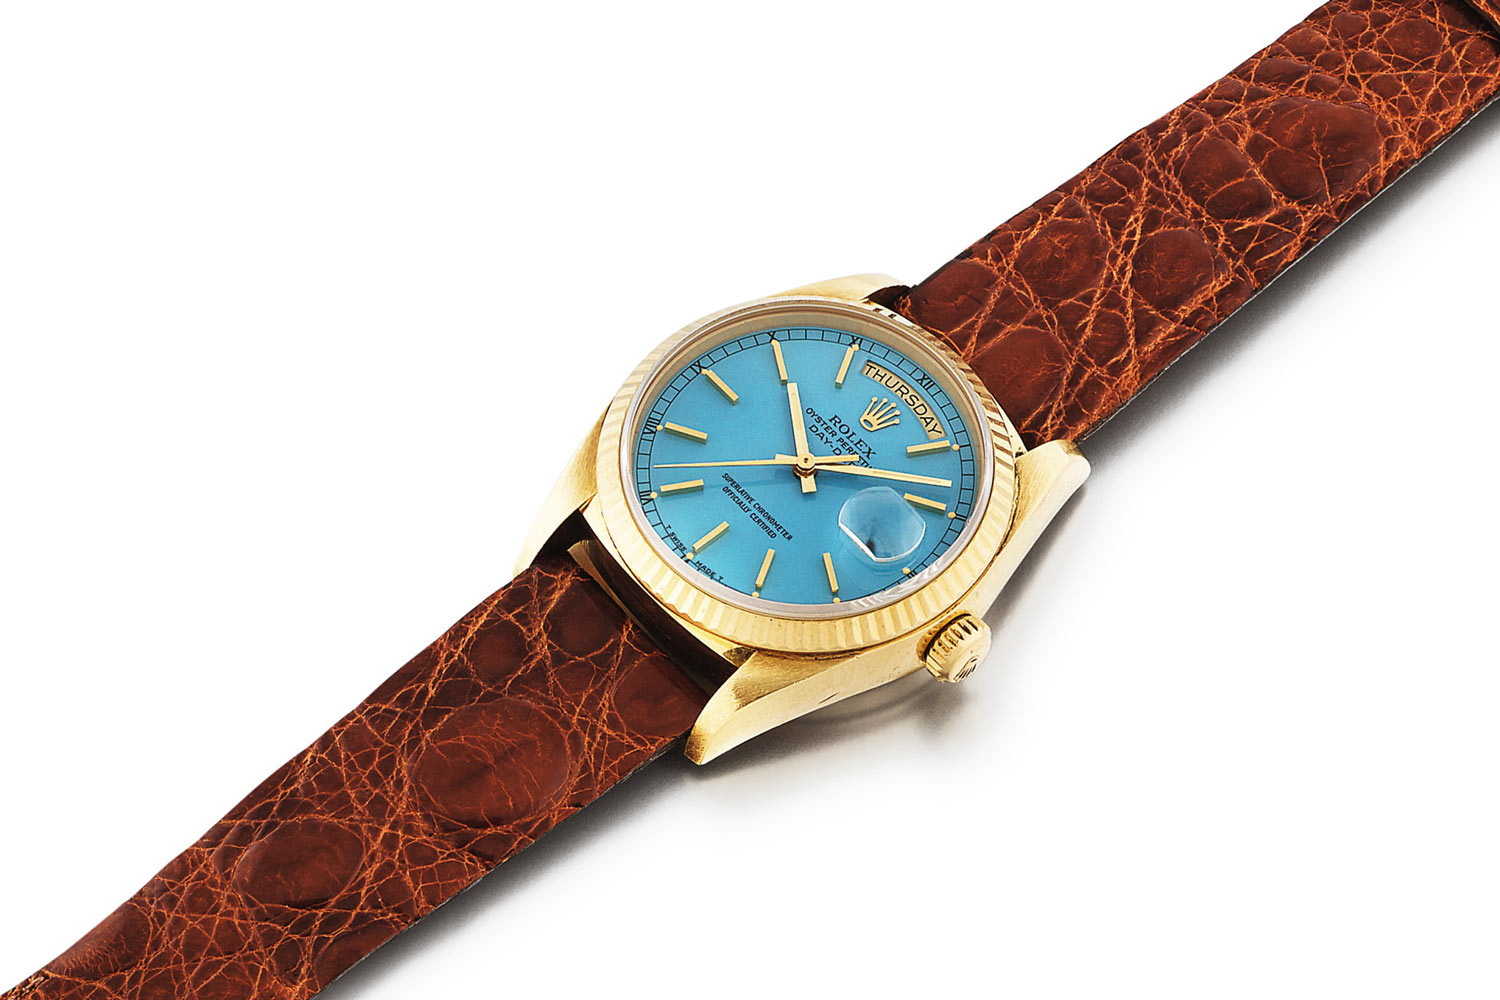 Lot 383: Rolex 'Stella' Day-Date Ref. 18038. Yellow gold wristwatch with day, date and blue Stella dial, circa 1986